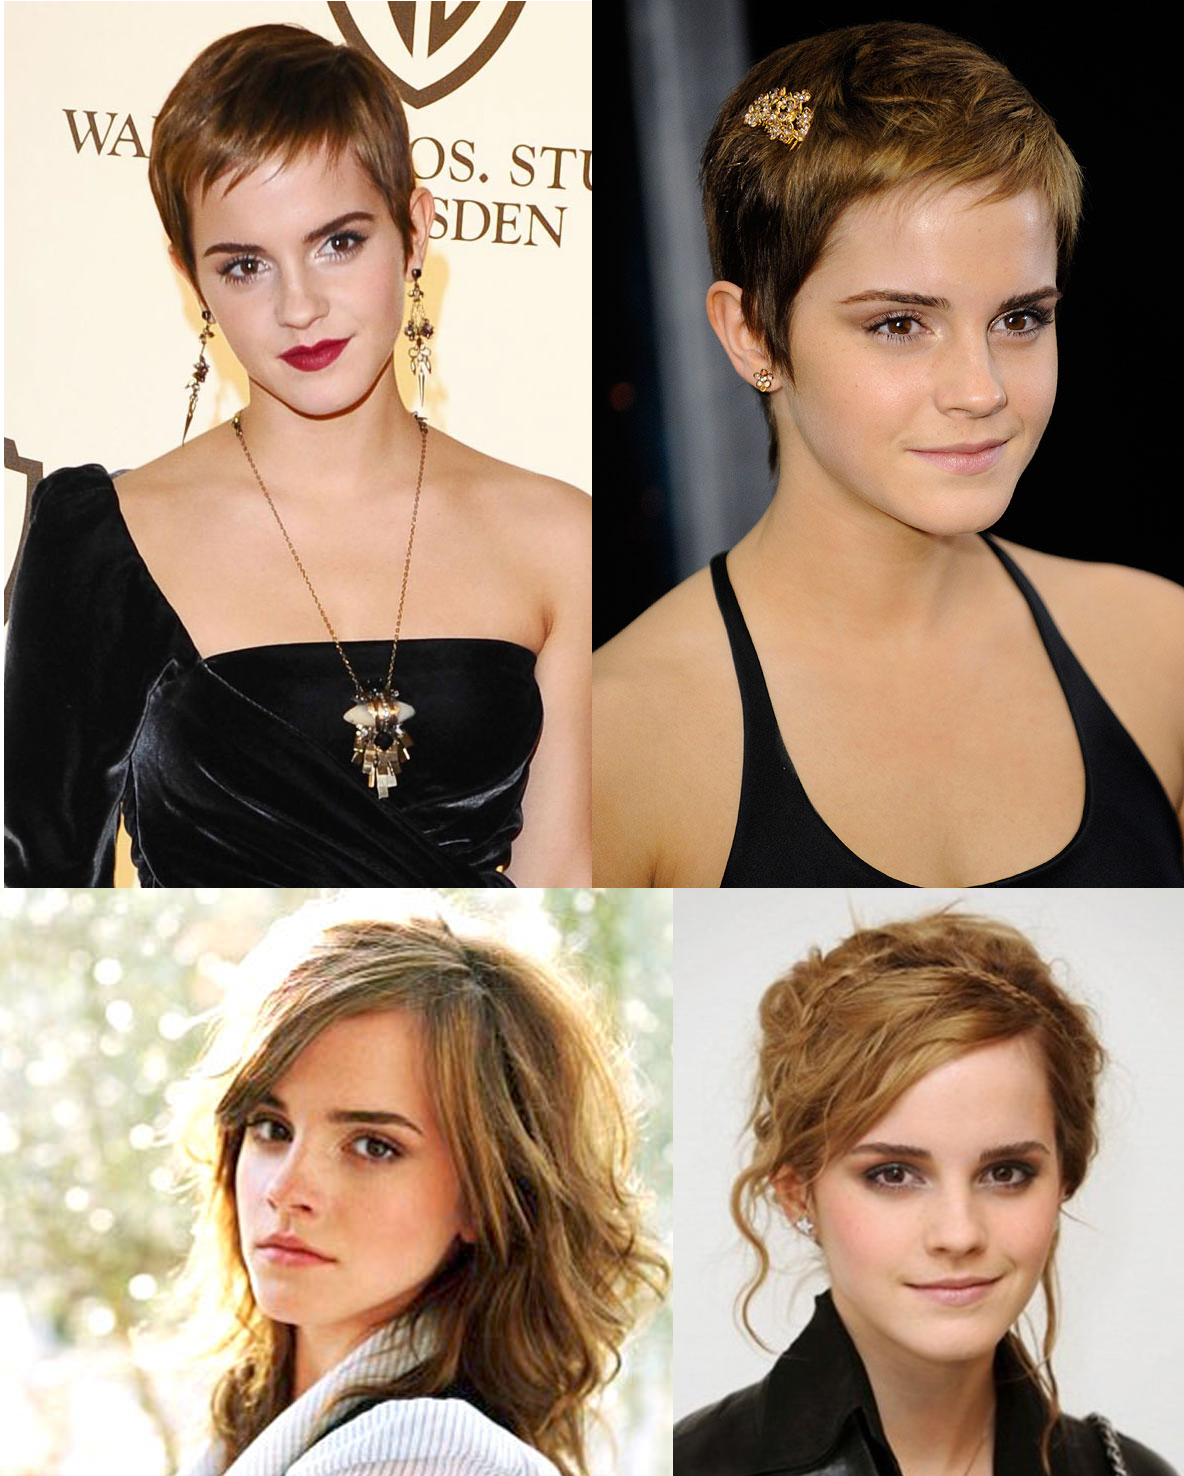 The Beauty Scoop!: (Almost) Wordless Wednesday - Emma Watson!